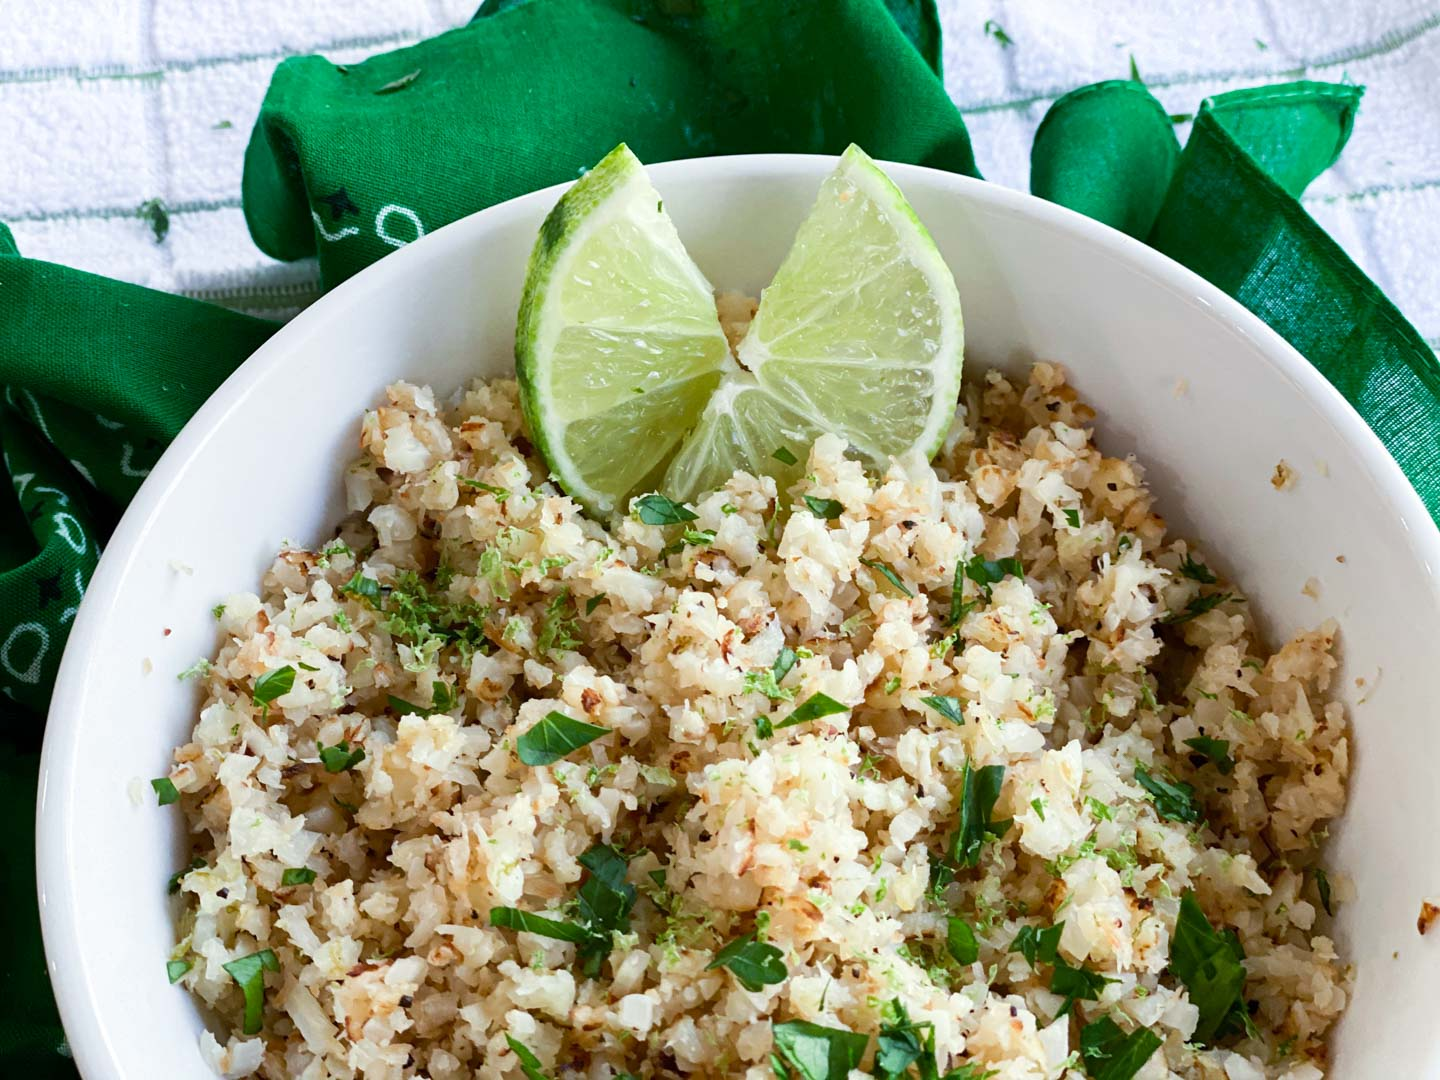 Cauliflower rice in a white bowl on a green towel with parsley